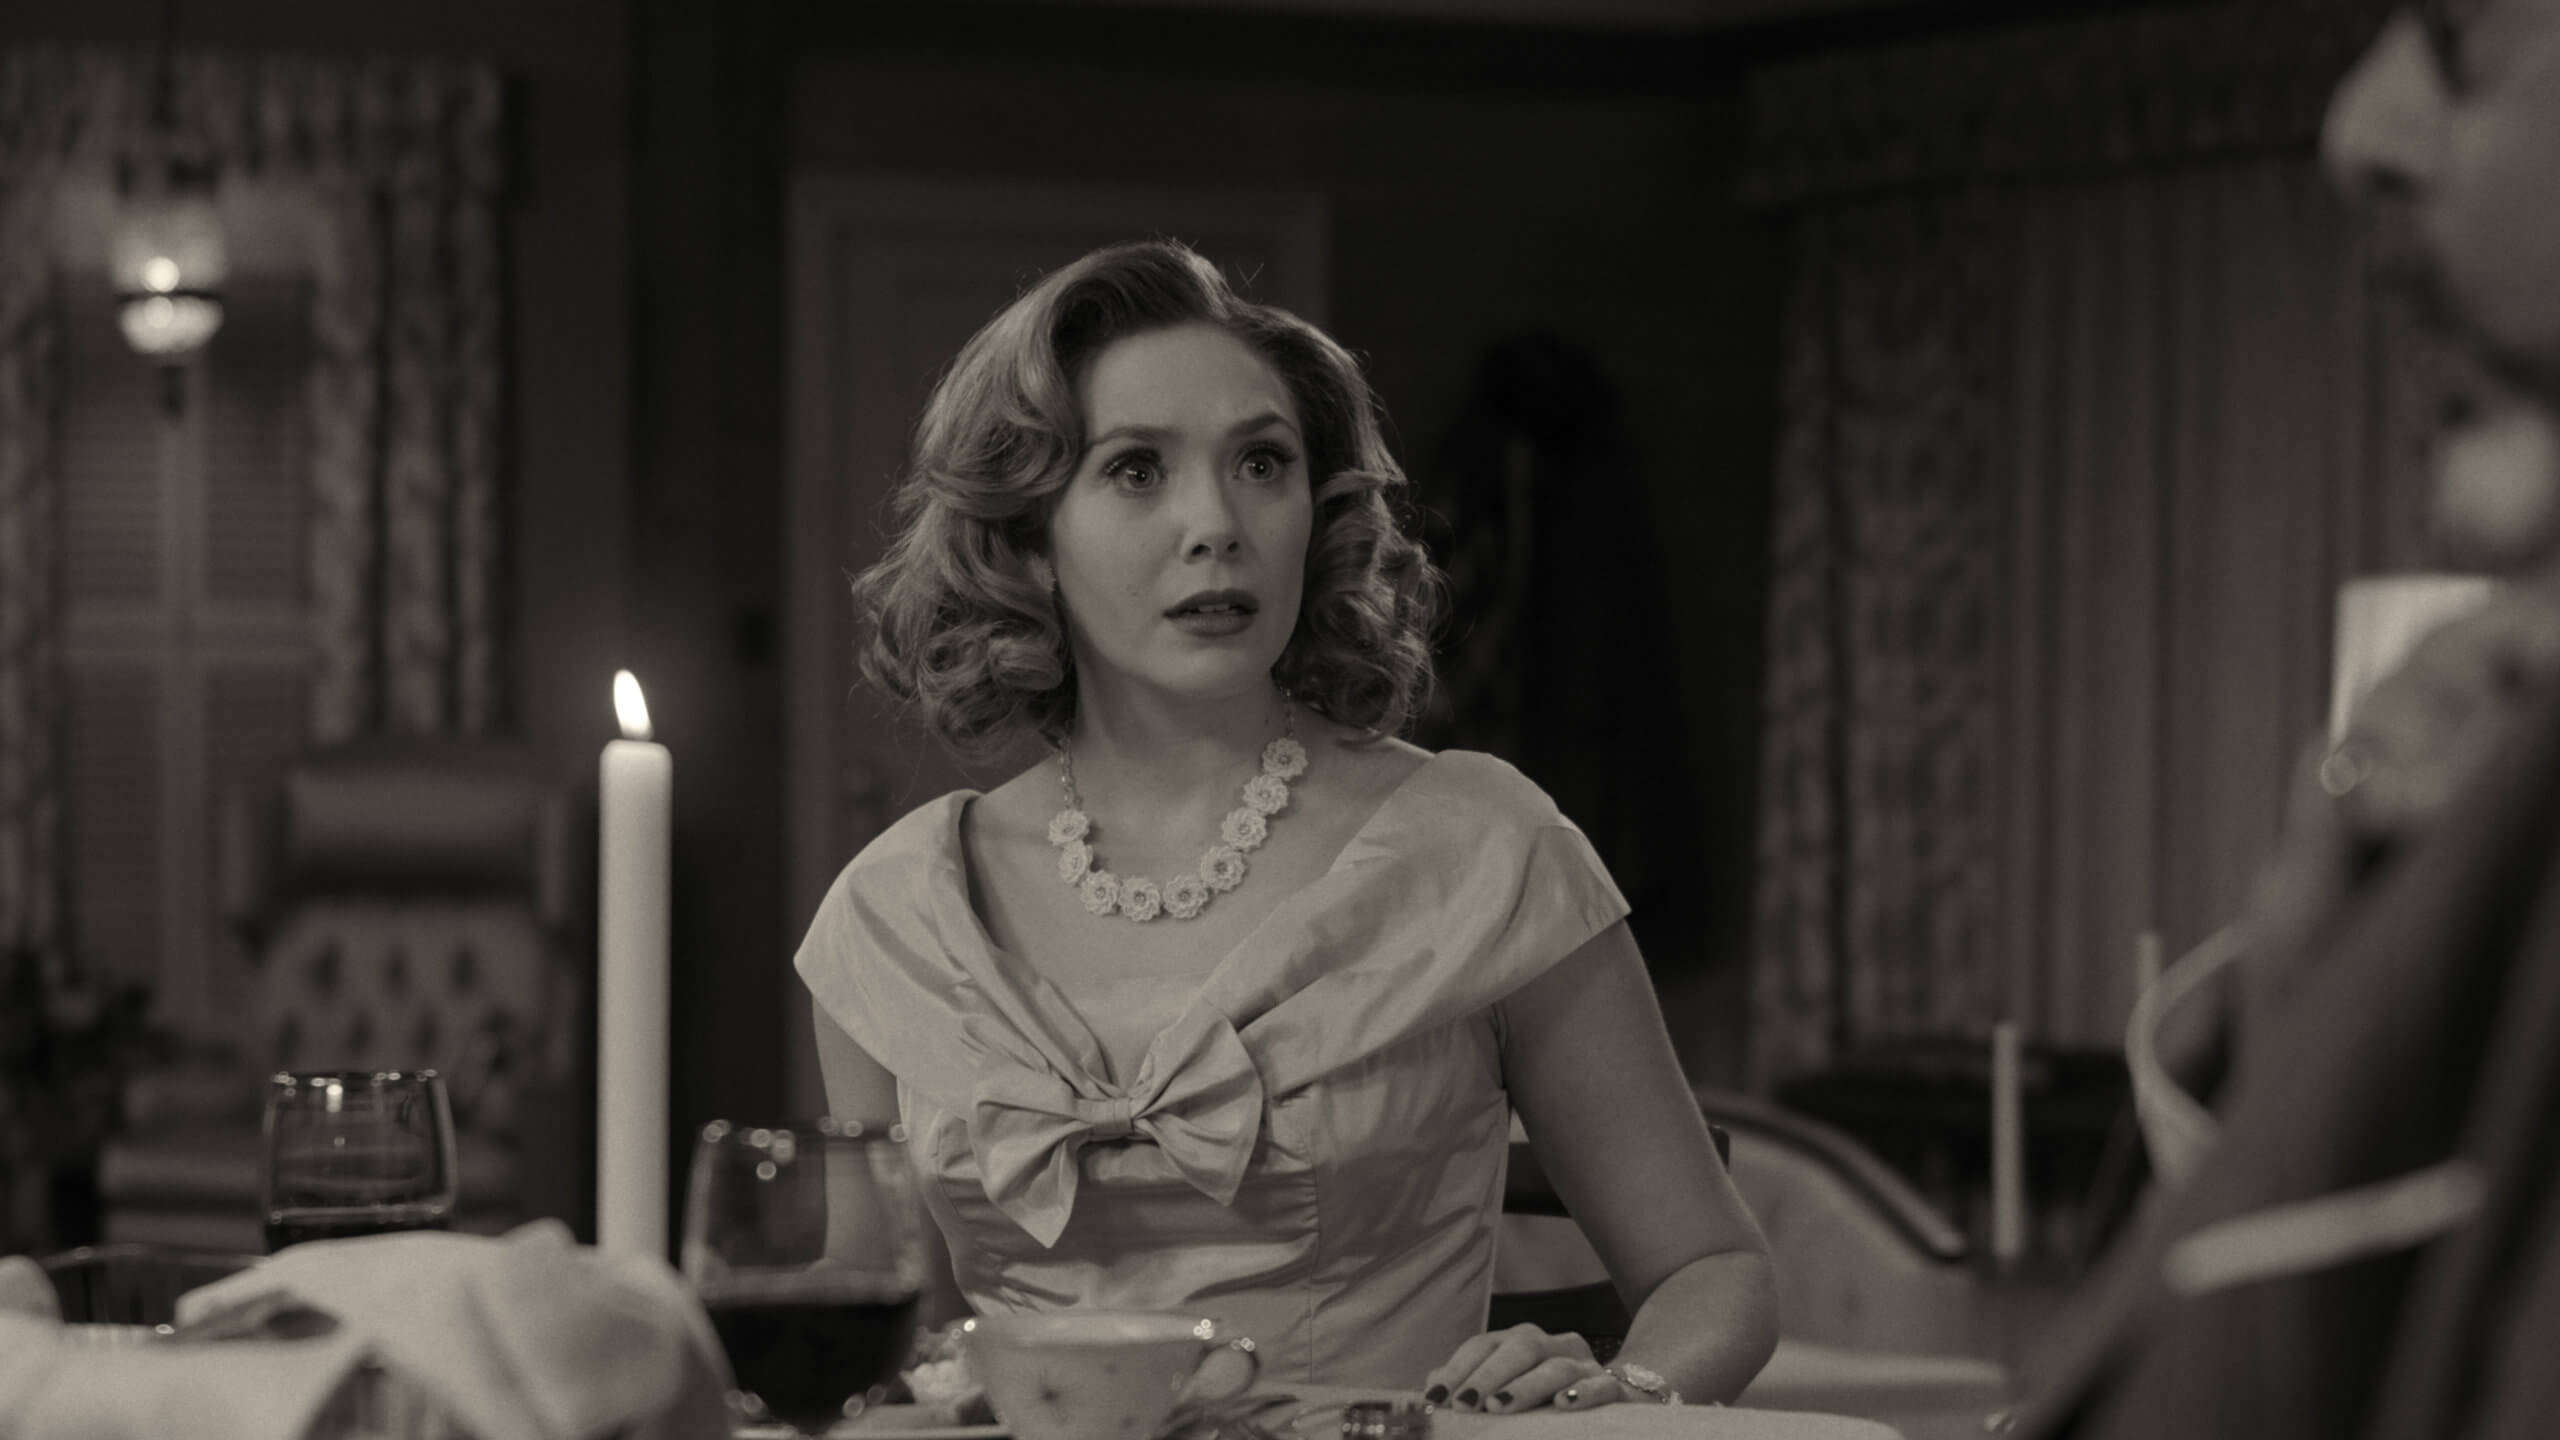 A woman dressed in 1950s formal wear and sporting a short, curled hairstyle sits at a dining table where a couple of wine glasses and a lit candle are set in front of her. She has an expression of shock, looking towards the right edge of the frame's foreground. An older man, out of focus, is sitting along her gaze, his hand against his chest.